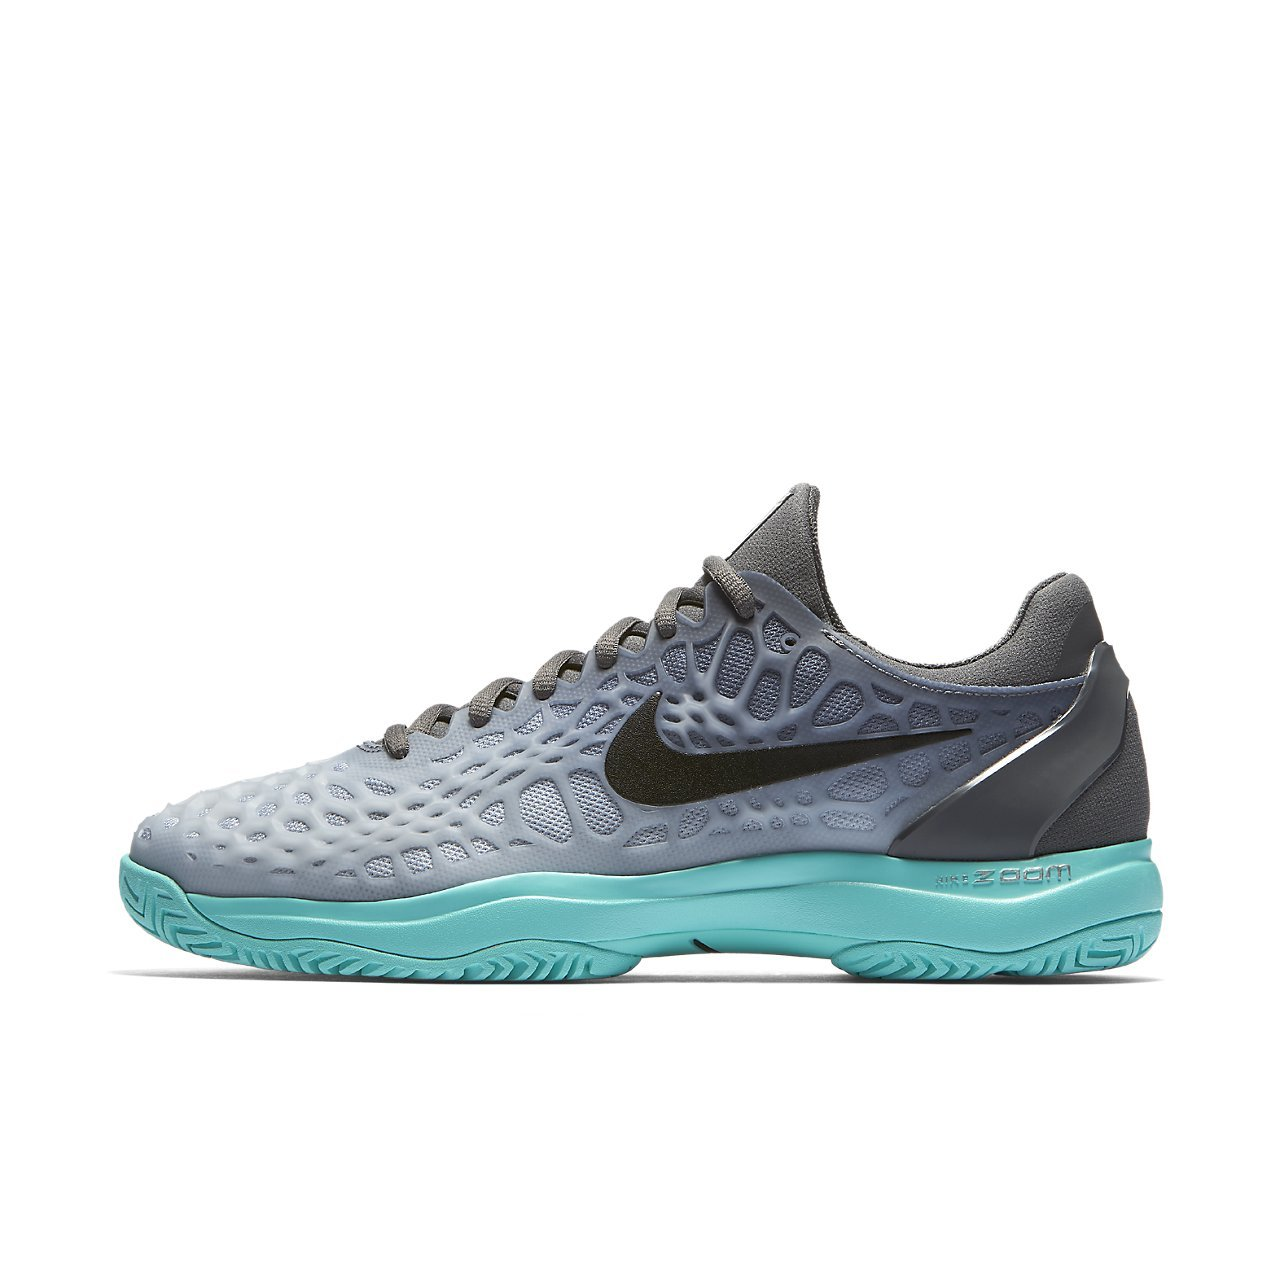 Nike Mens Zoom Cage 3 Tennis Shoes B006K2Y7VA 11 M US|Dark Grey/Black/Aurora Green/Wolf Grey